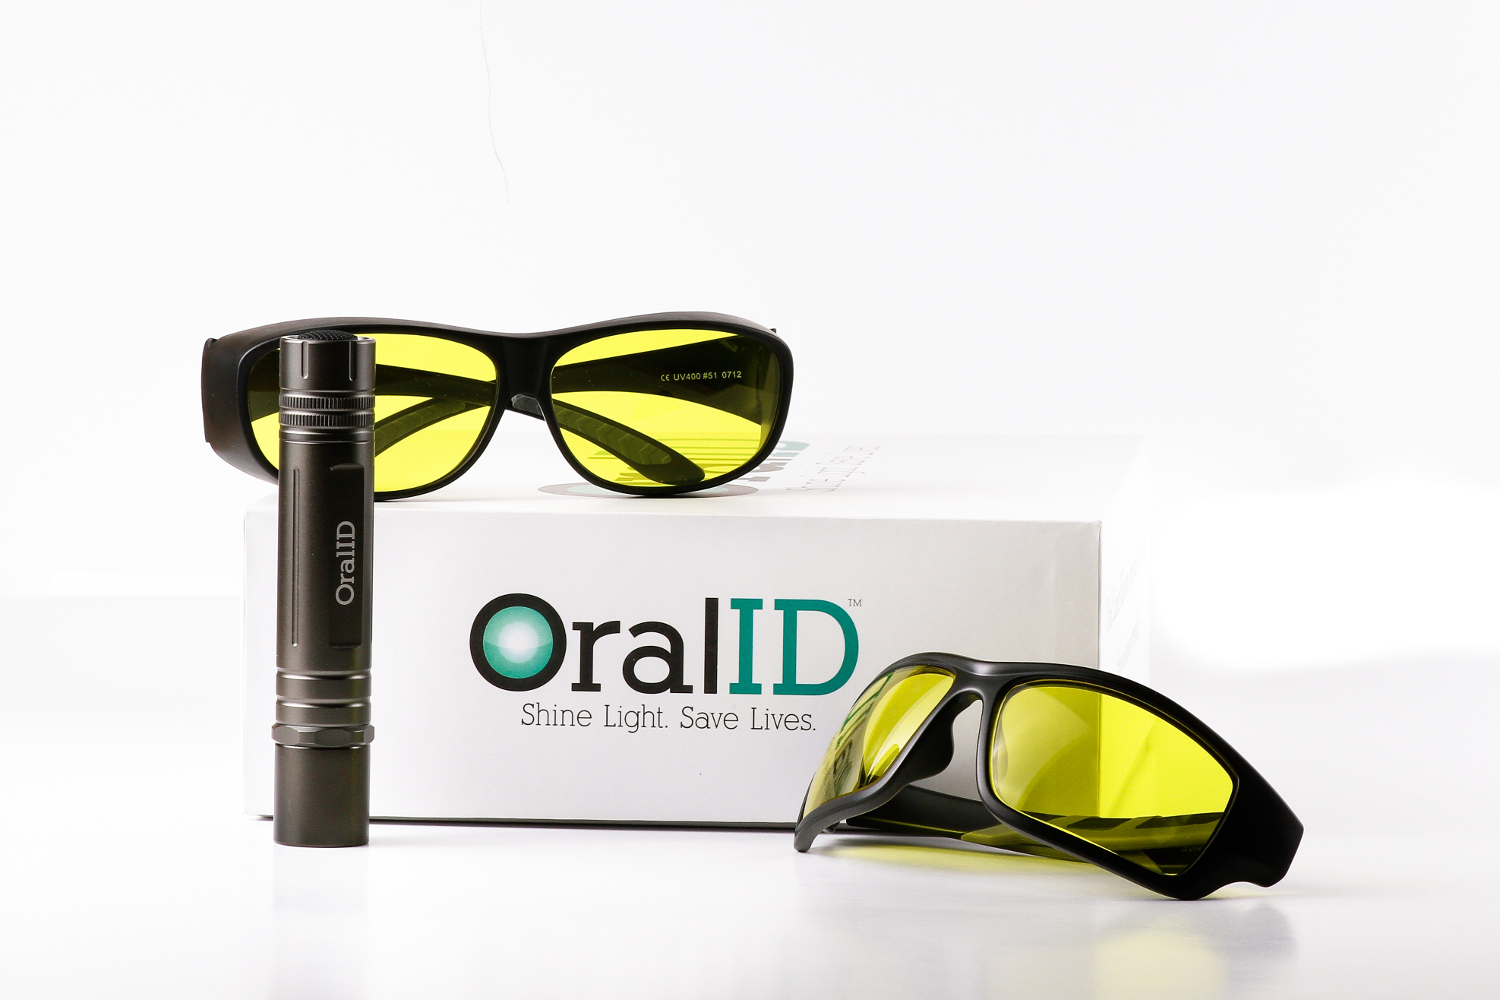 oralid product image1 1